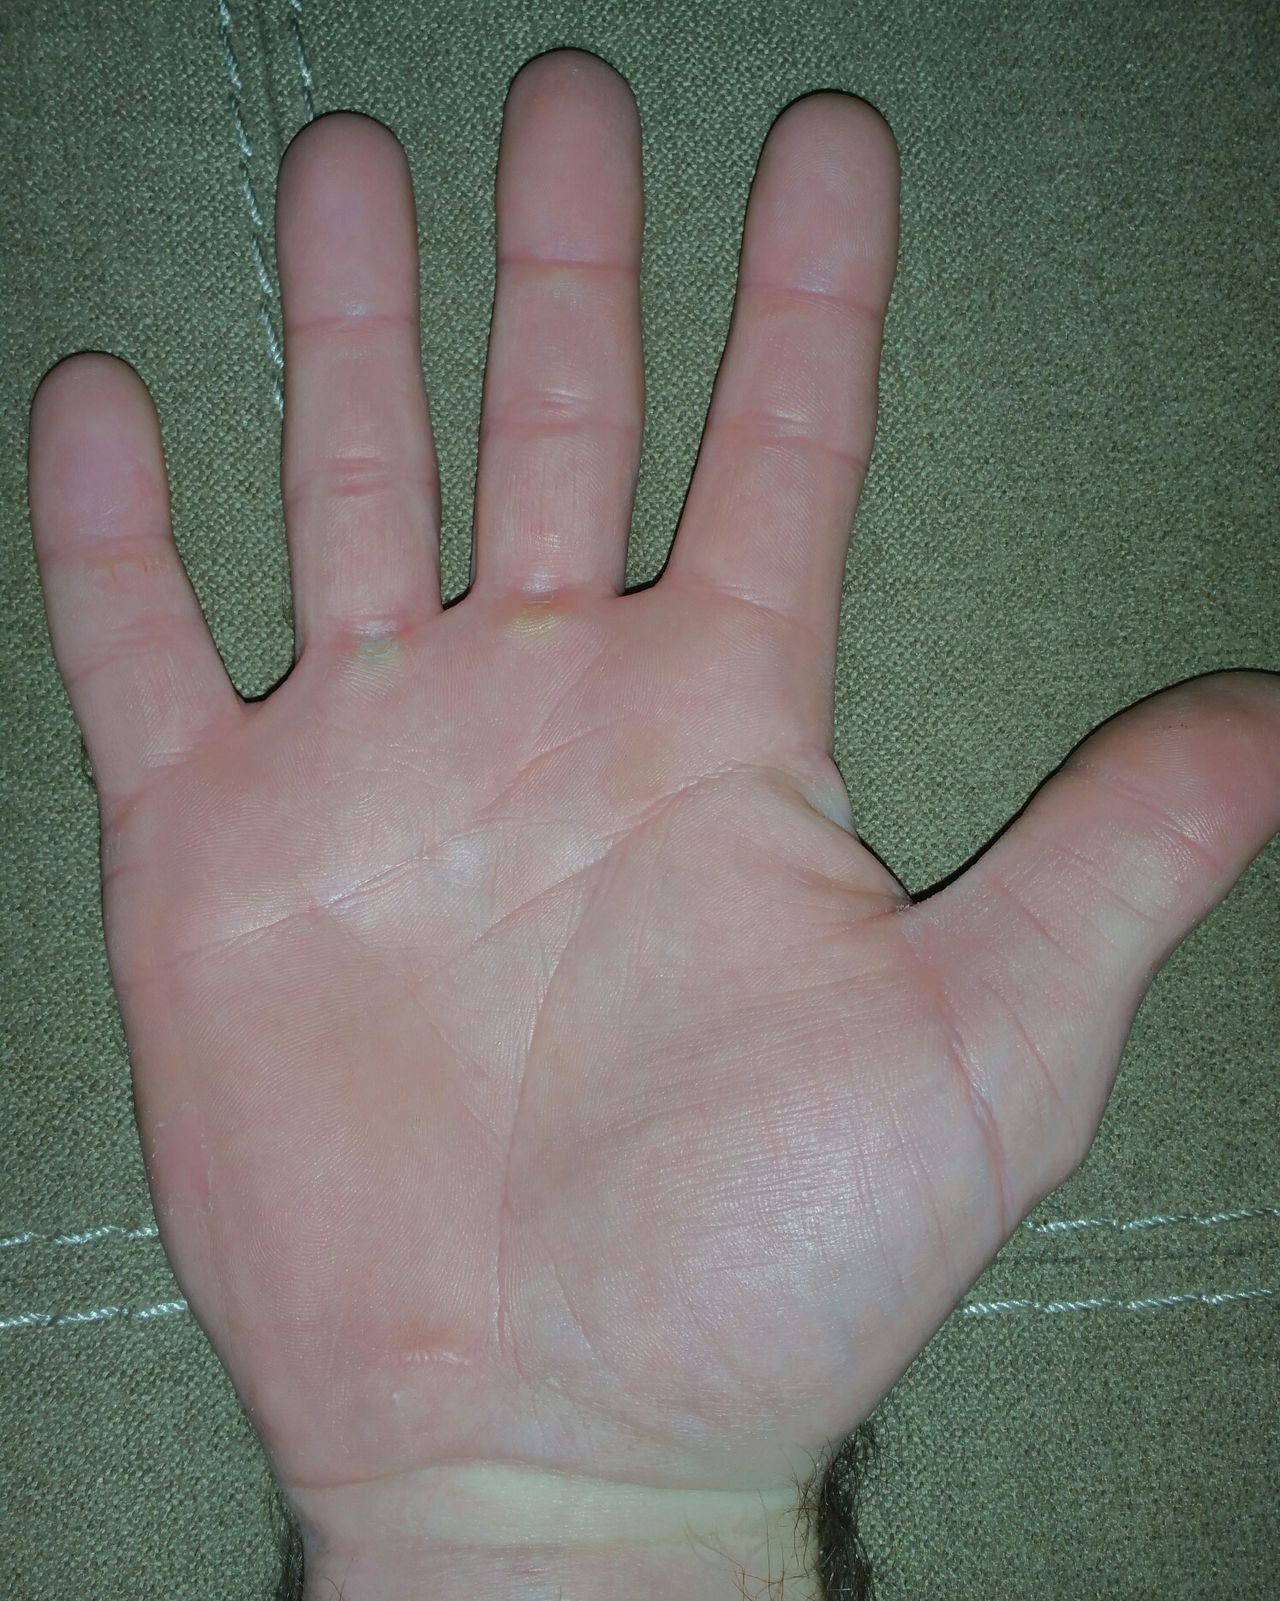 Human Body Part Human Finger Close-up People Person Hand Working Hands Calloused Hands Calloused Callouses Hard Worker Hello World Palm Palms Fingers